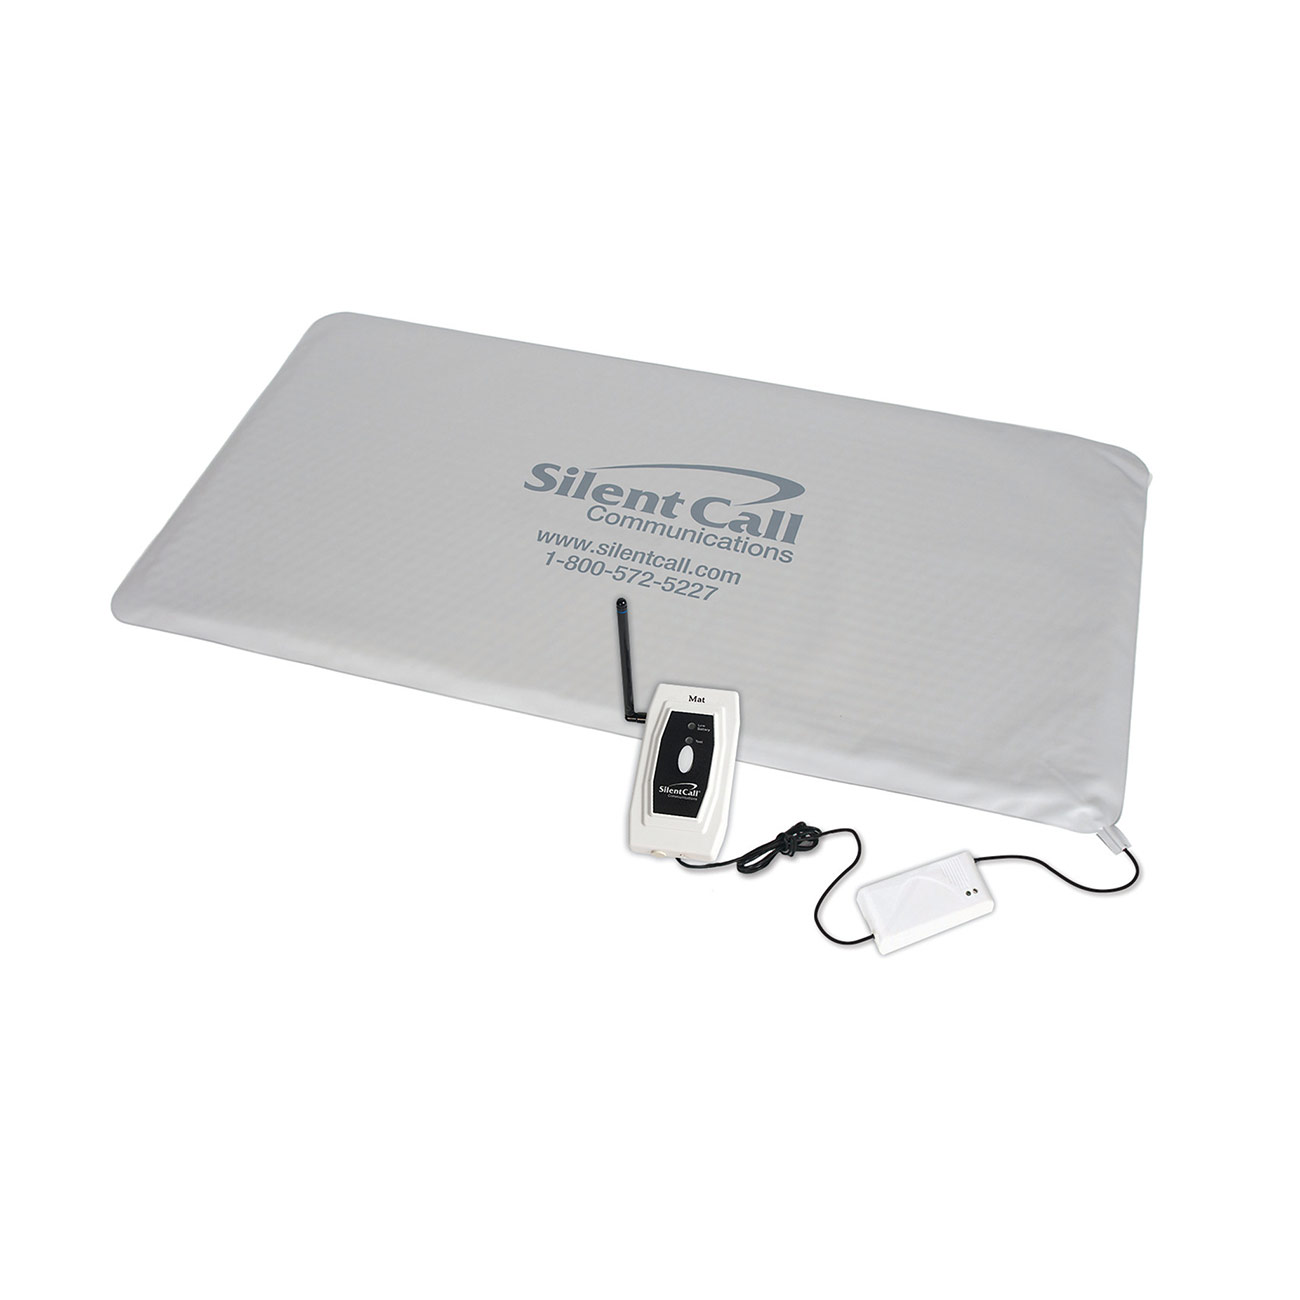 Silent Call Medallion Series Bed Mat with Transmitter